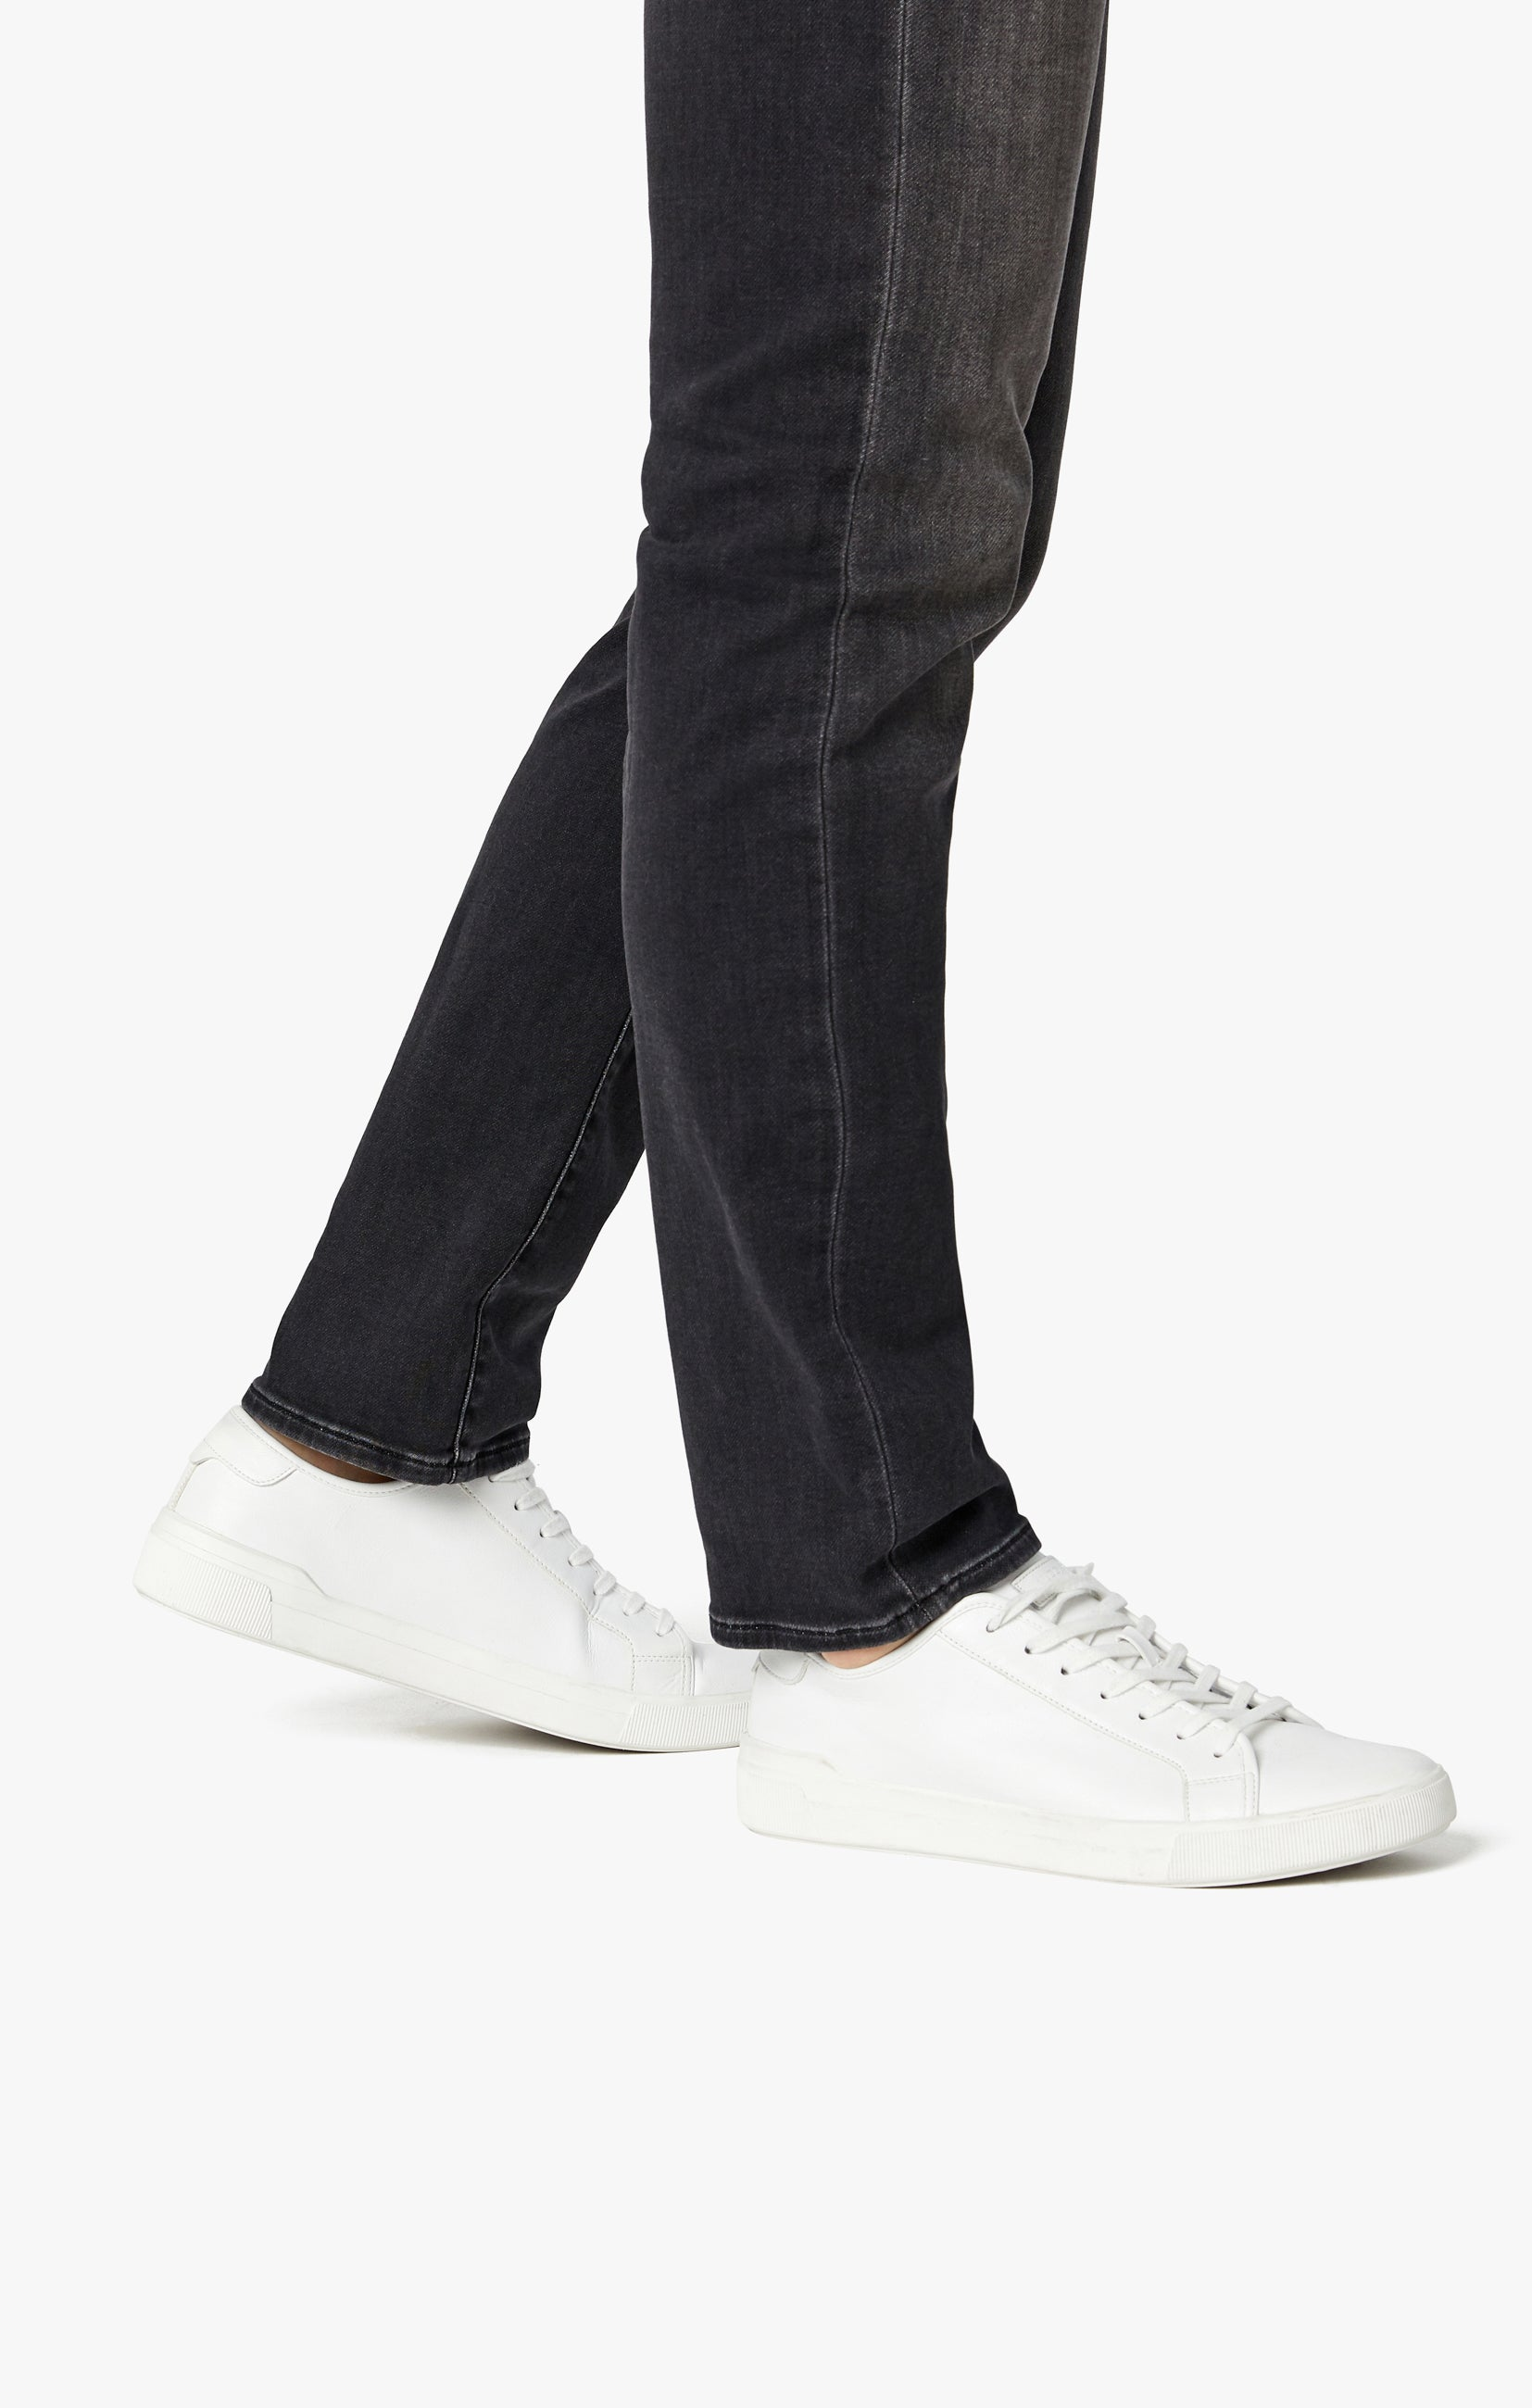 Courage Straight Leg Jeans in Mid Smoke Smart Casual Image 7